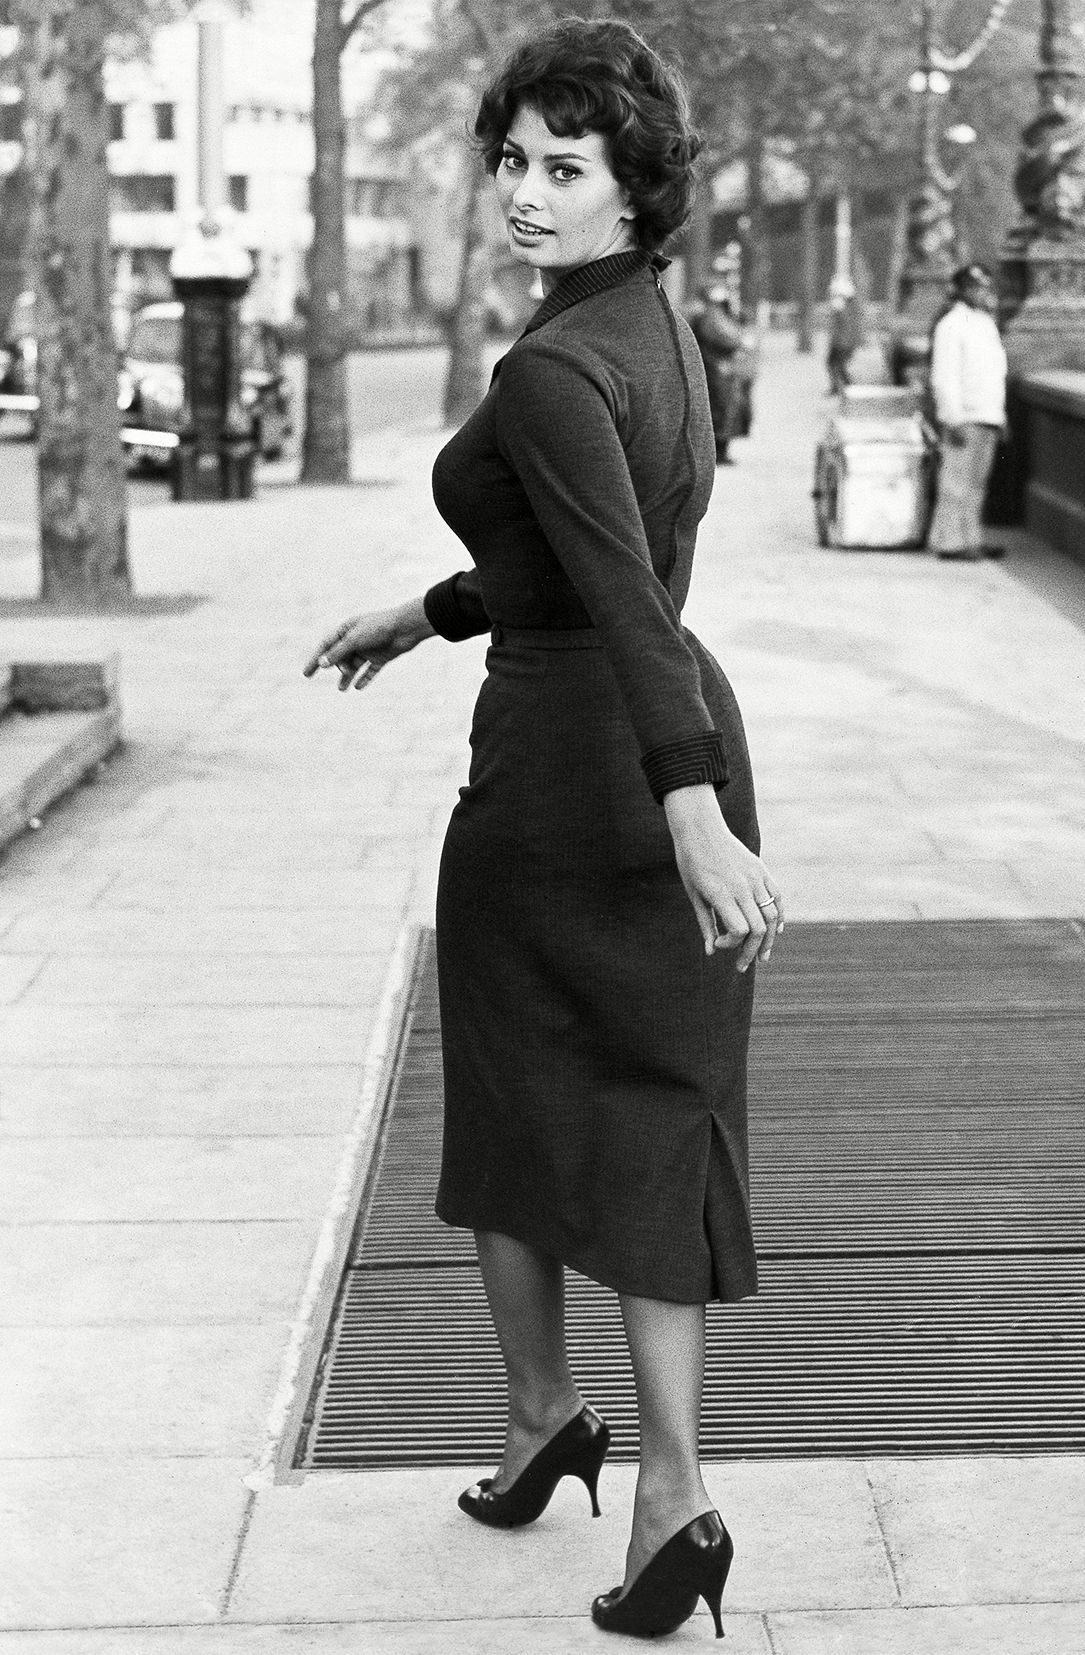 Sophia Loren walking the streets of London circa 1957. // #classicbeauty #streetstyle #fashion